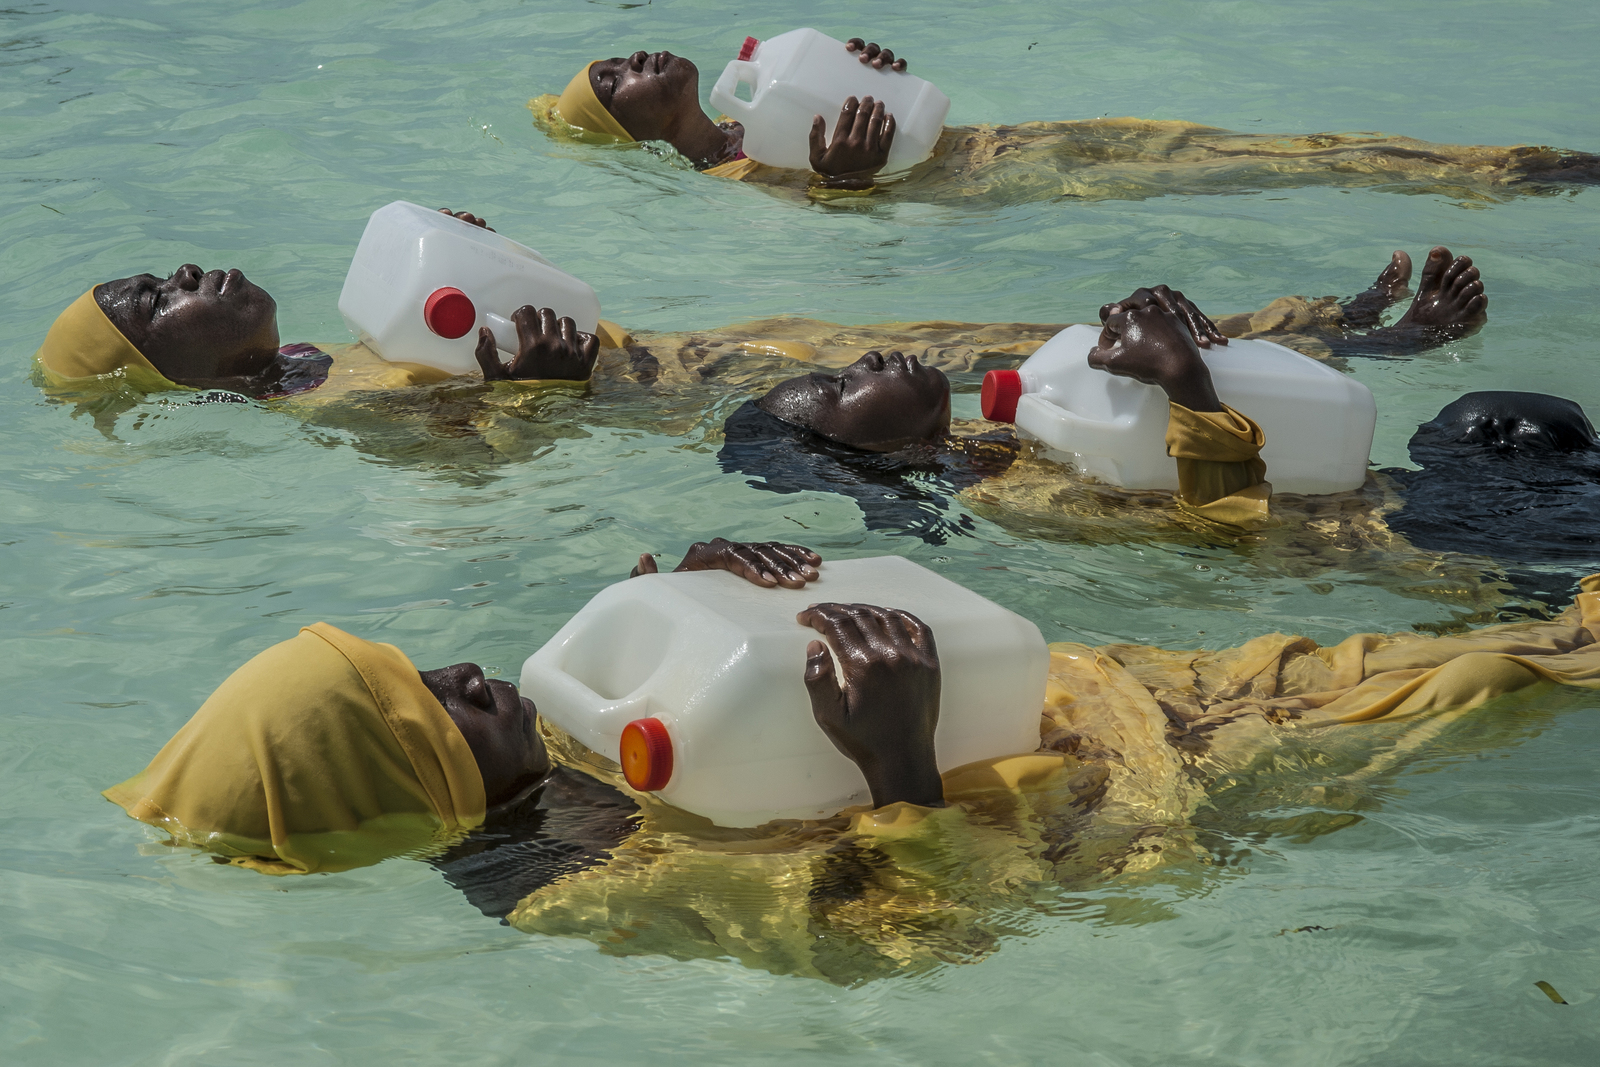 Kijini Primary School students learn to float, swim and perform rescues on Tuesday, October 25, 2016 in the Indian Ocean off of Mnyuni, Zanzibar.